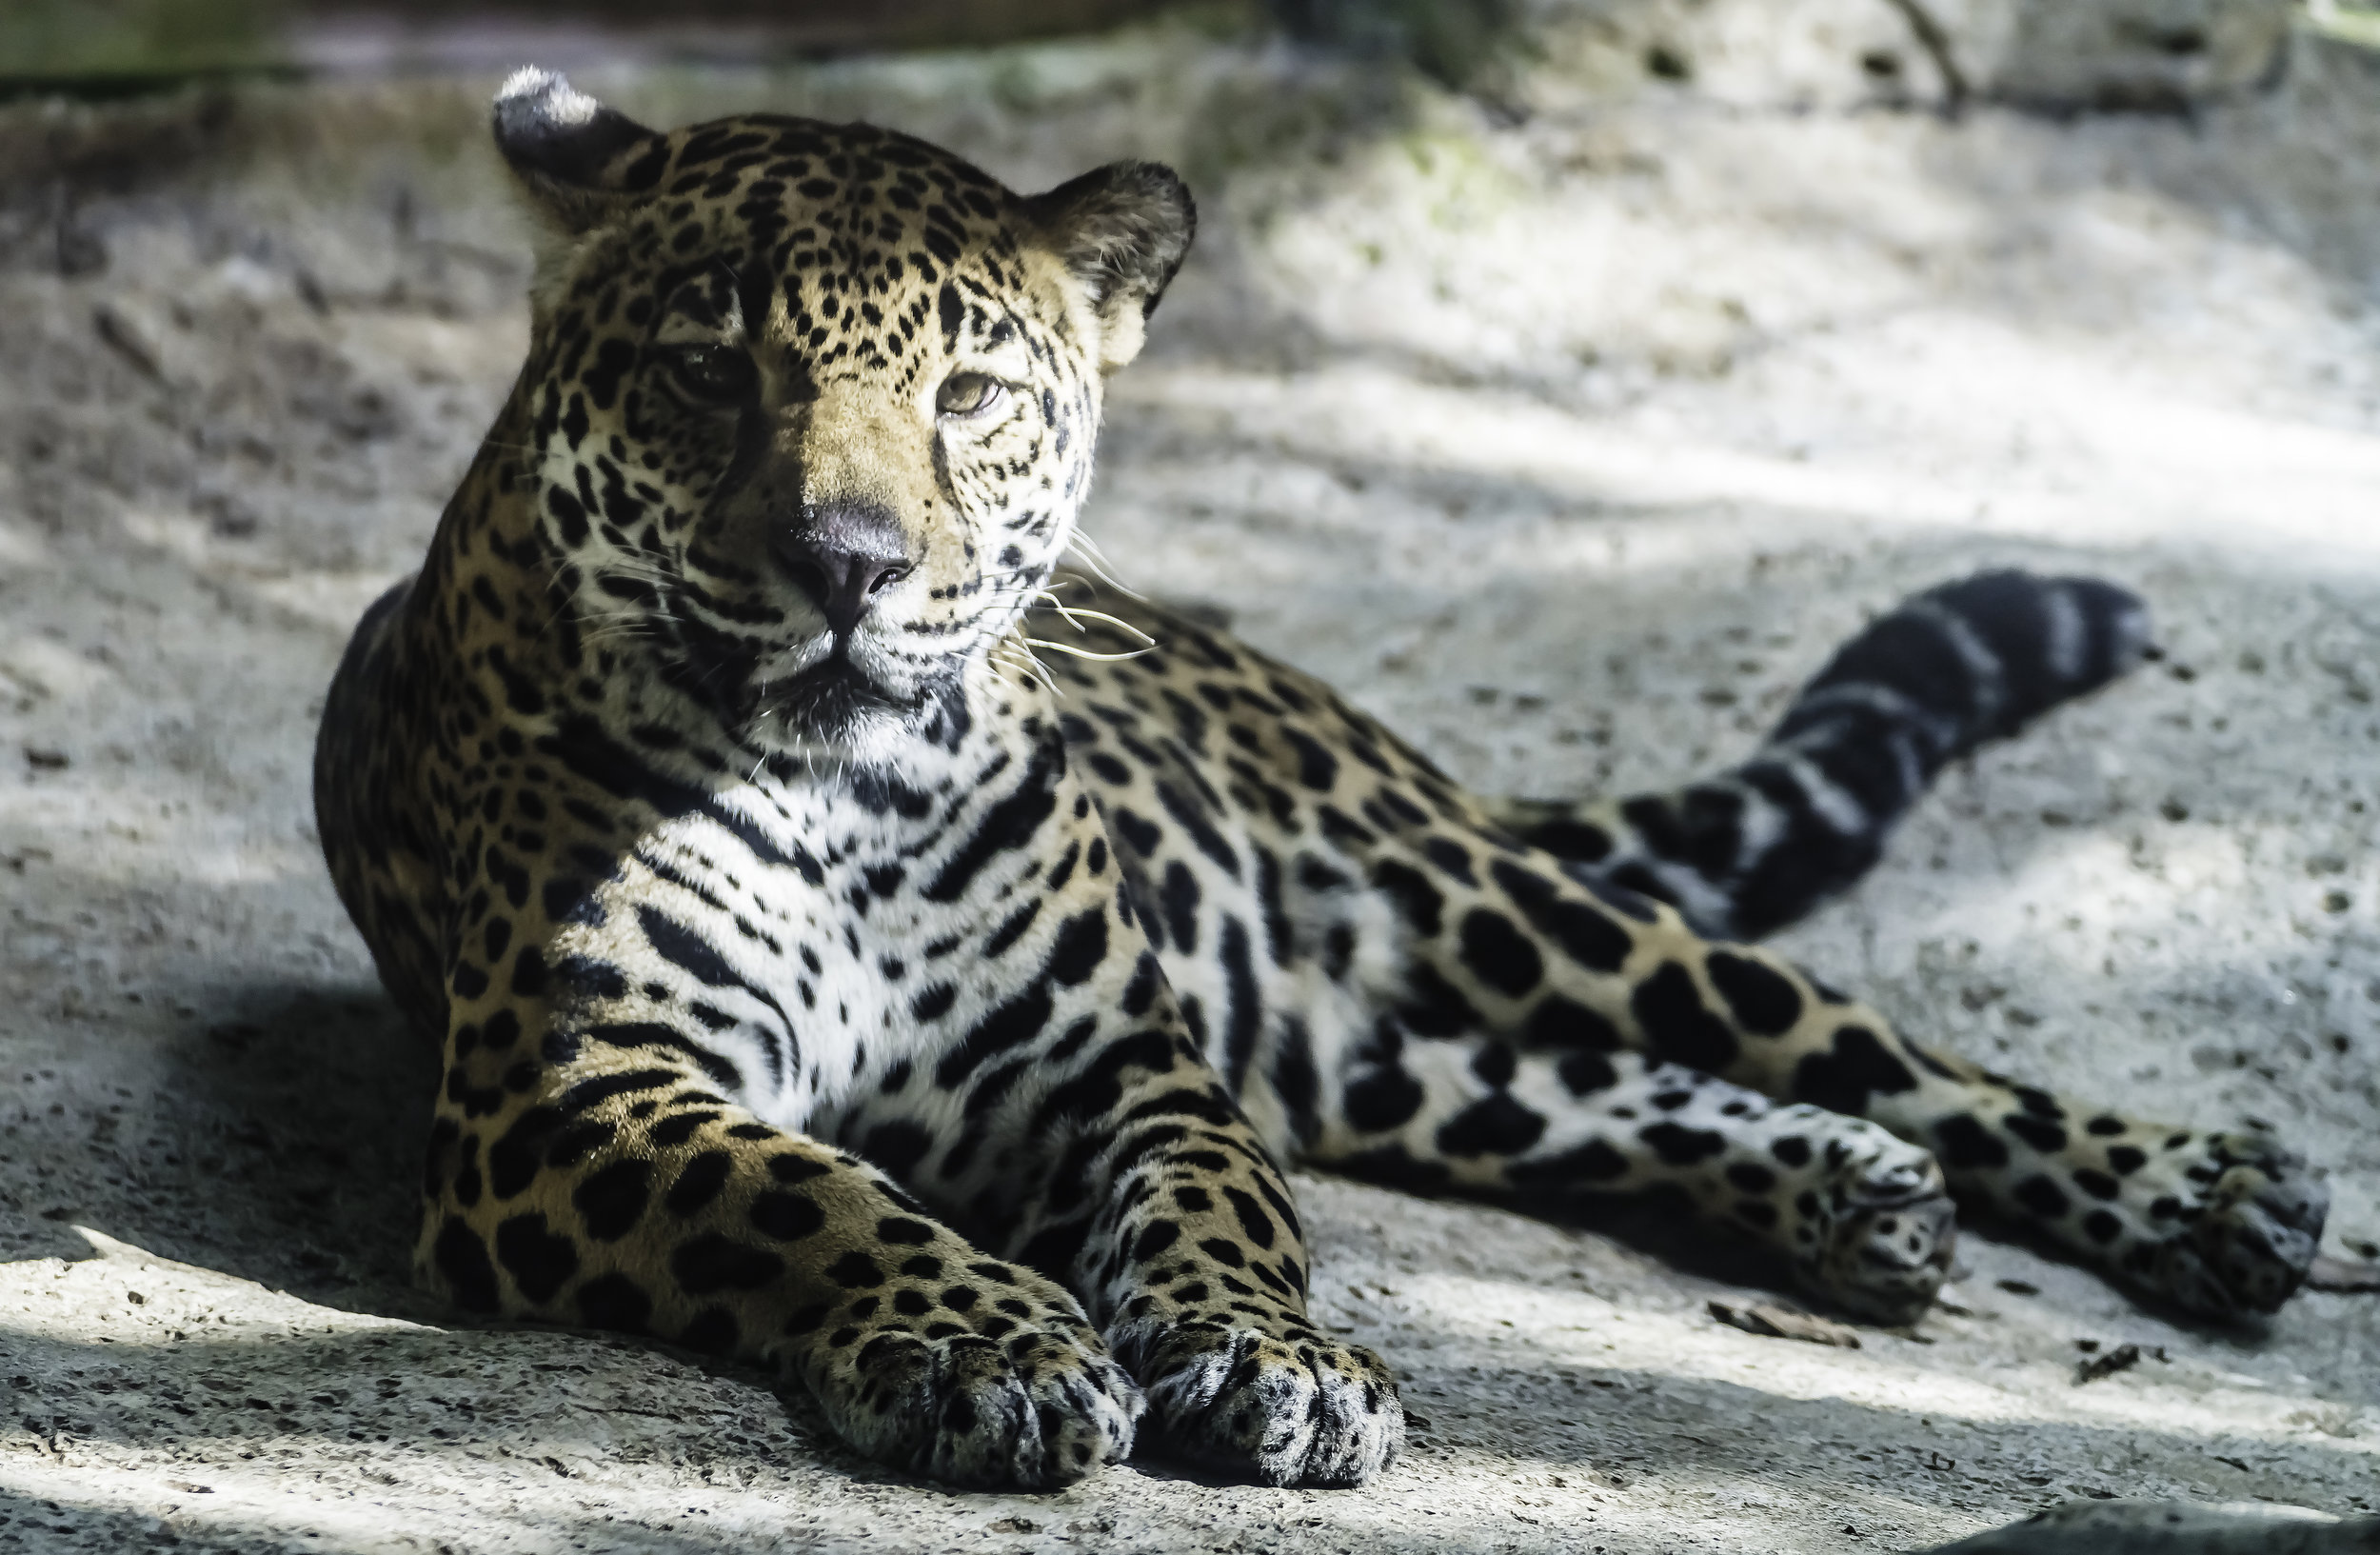 Regal Jaguar